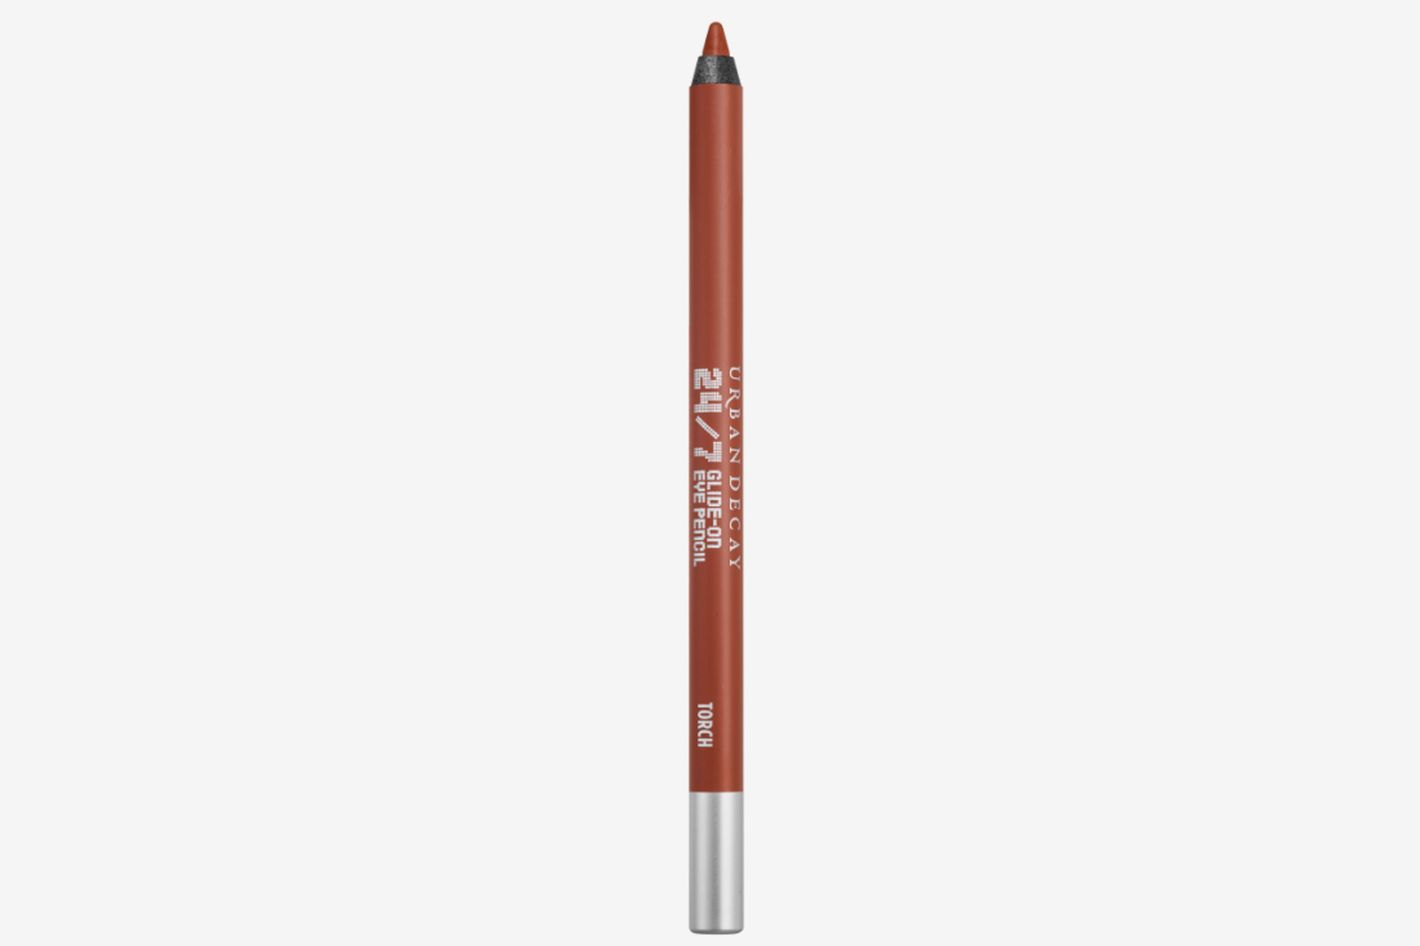 Naked Heat 24/7 Glide-On Eye Pencil Torch